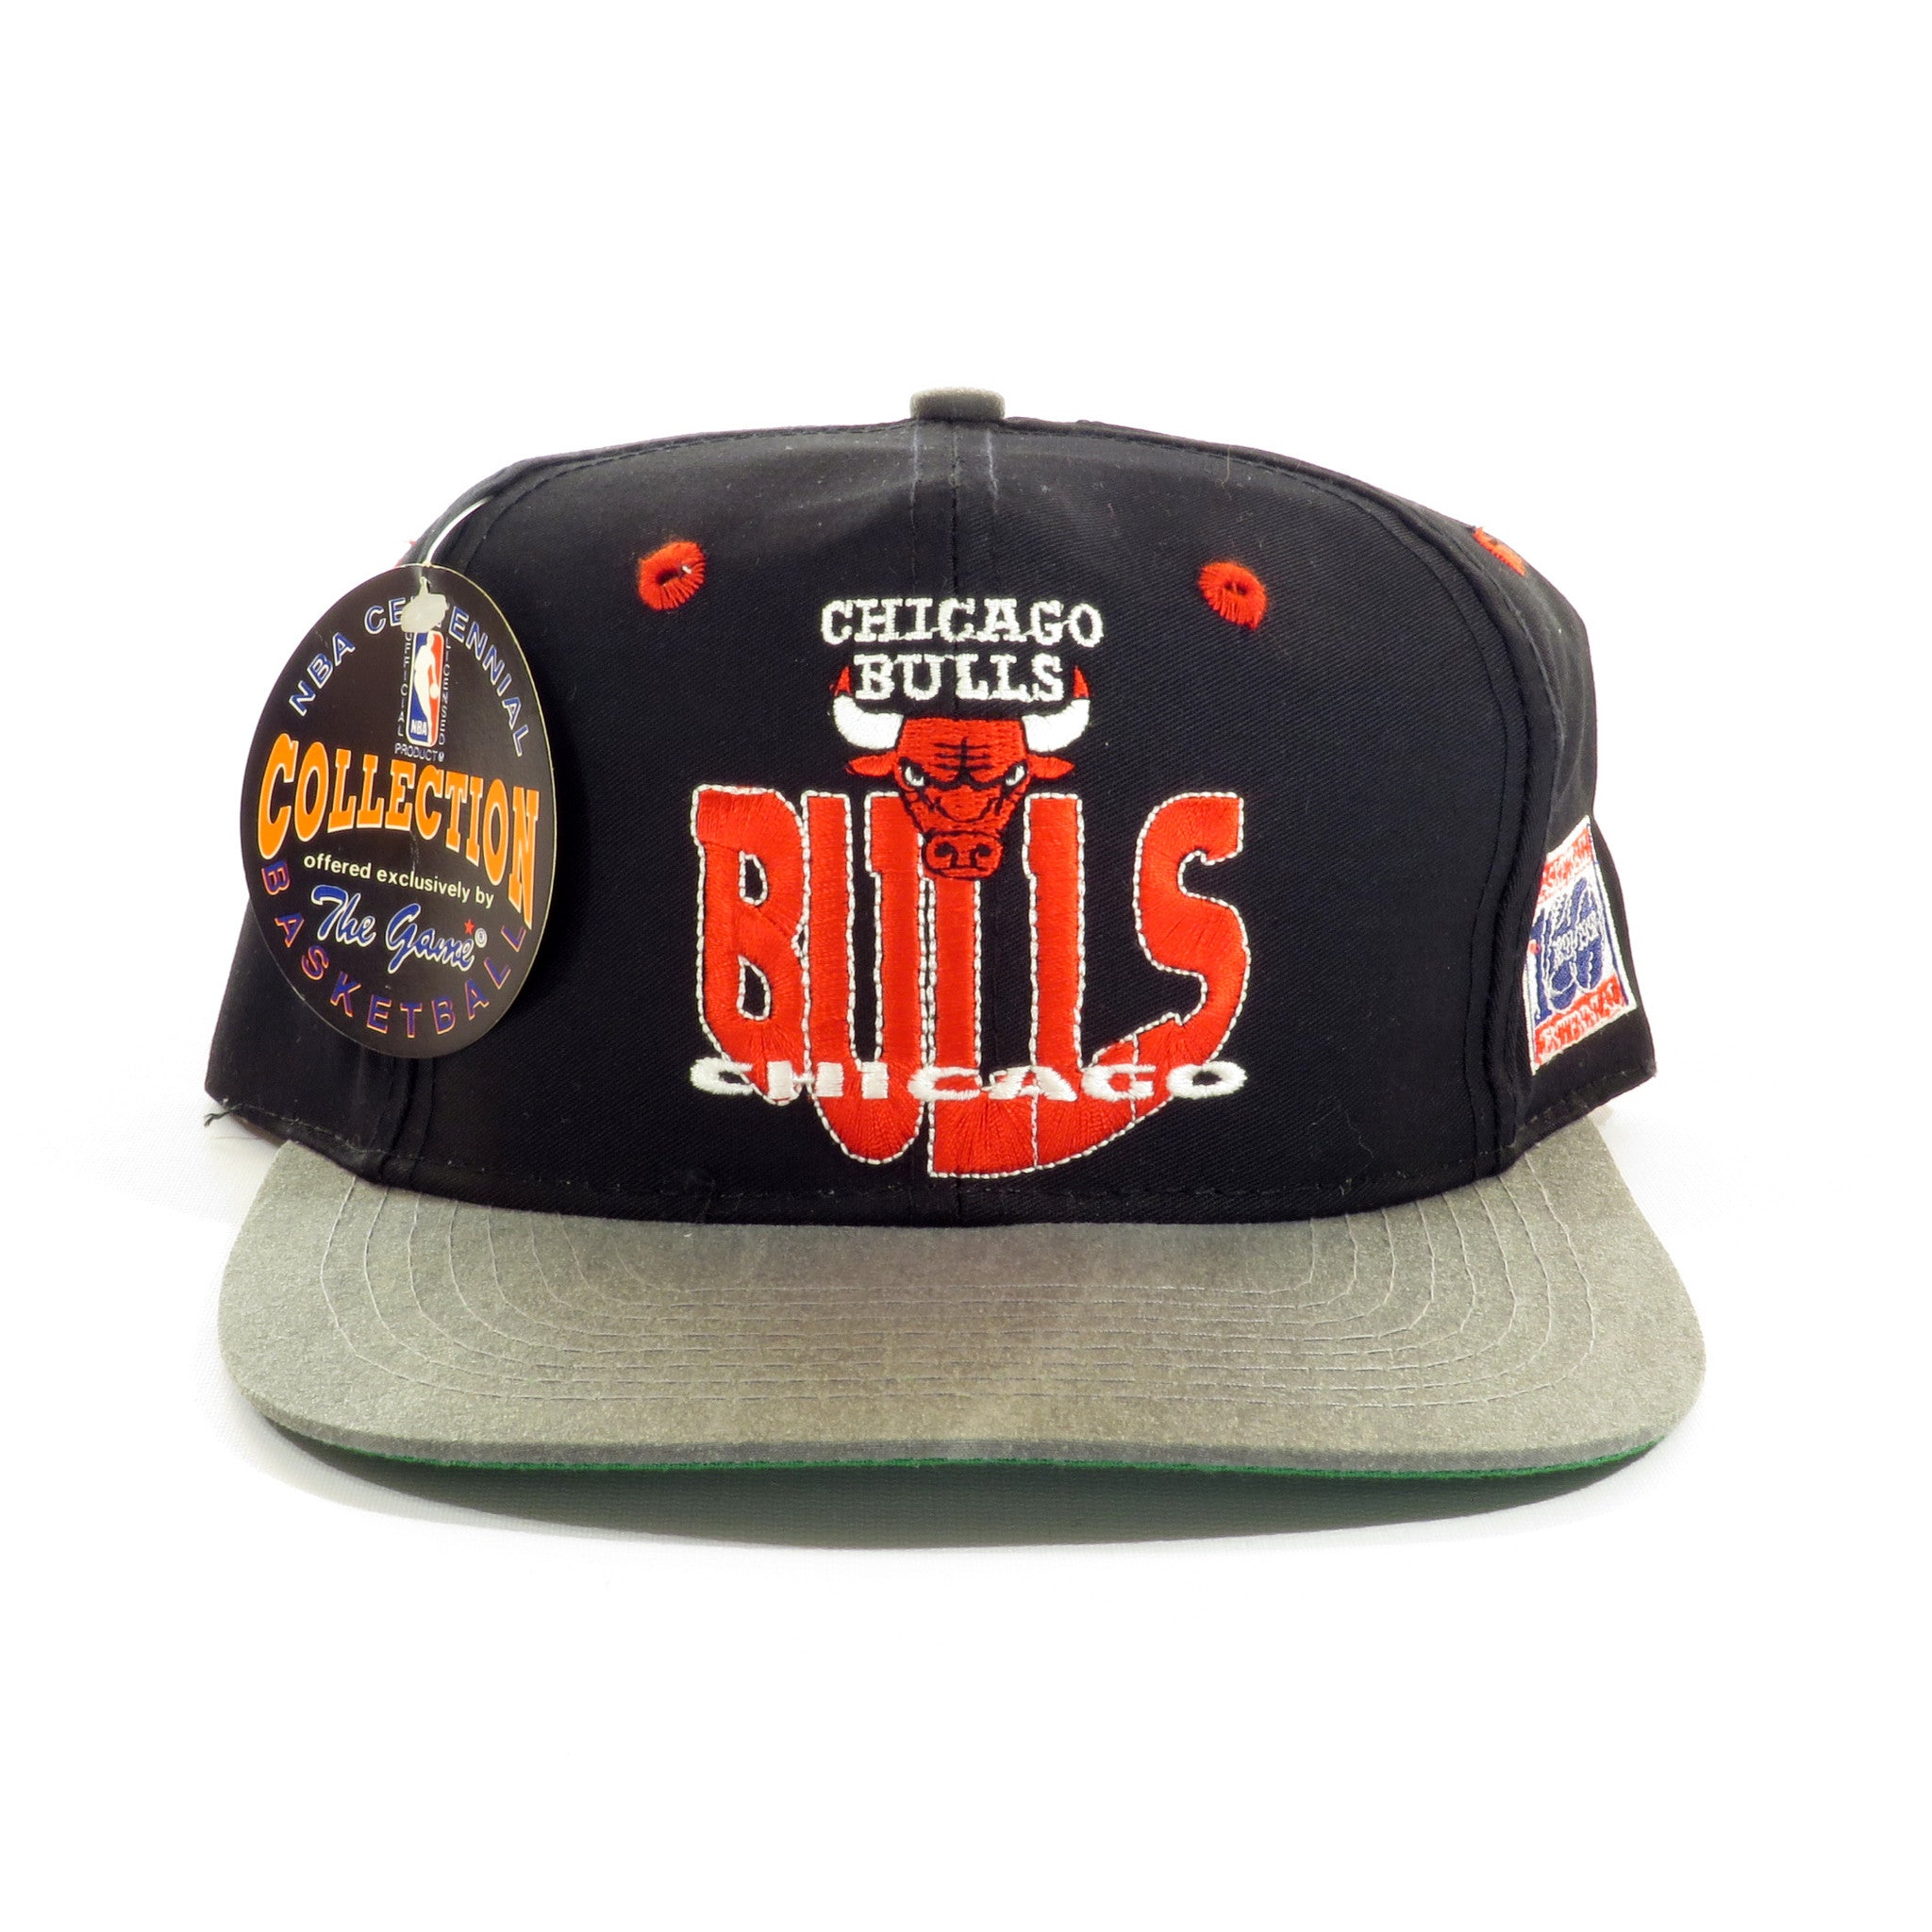 Chicago Bulls The Game Snapback Hat